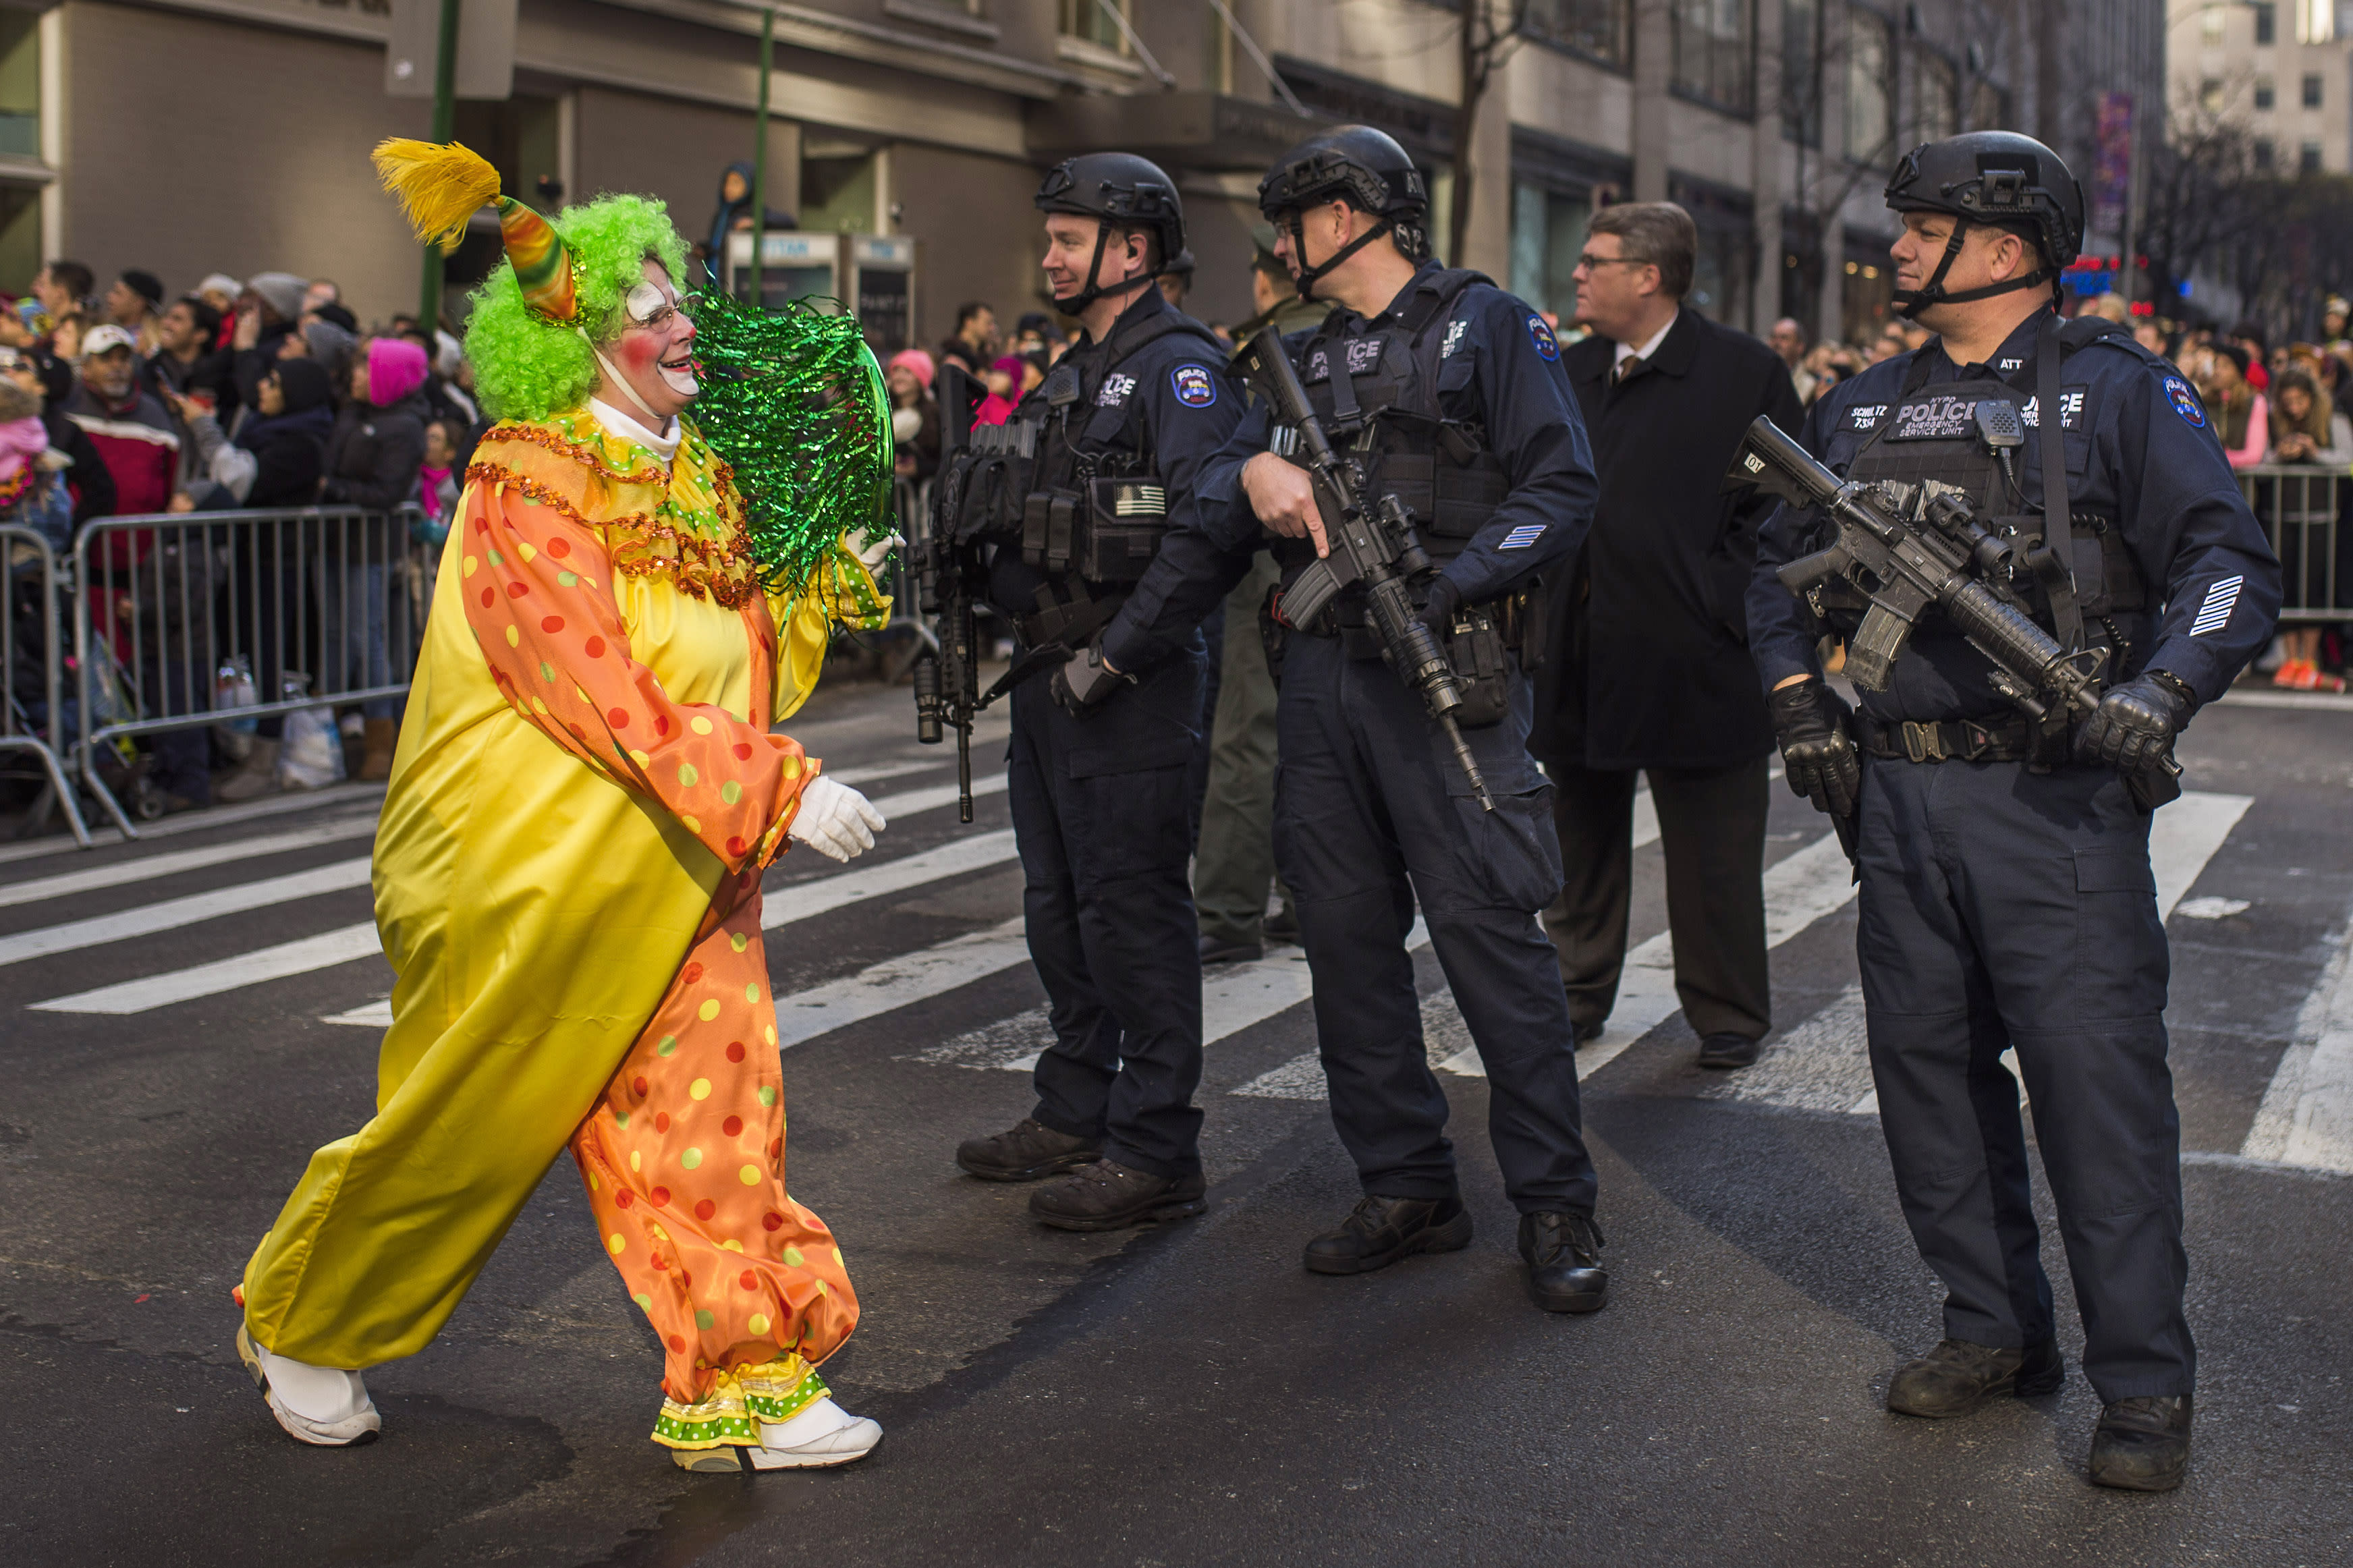 Big balloons, heavy security for NYC Thanksgiving parade